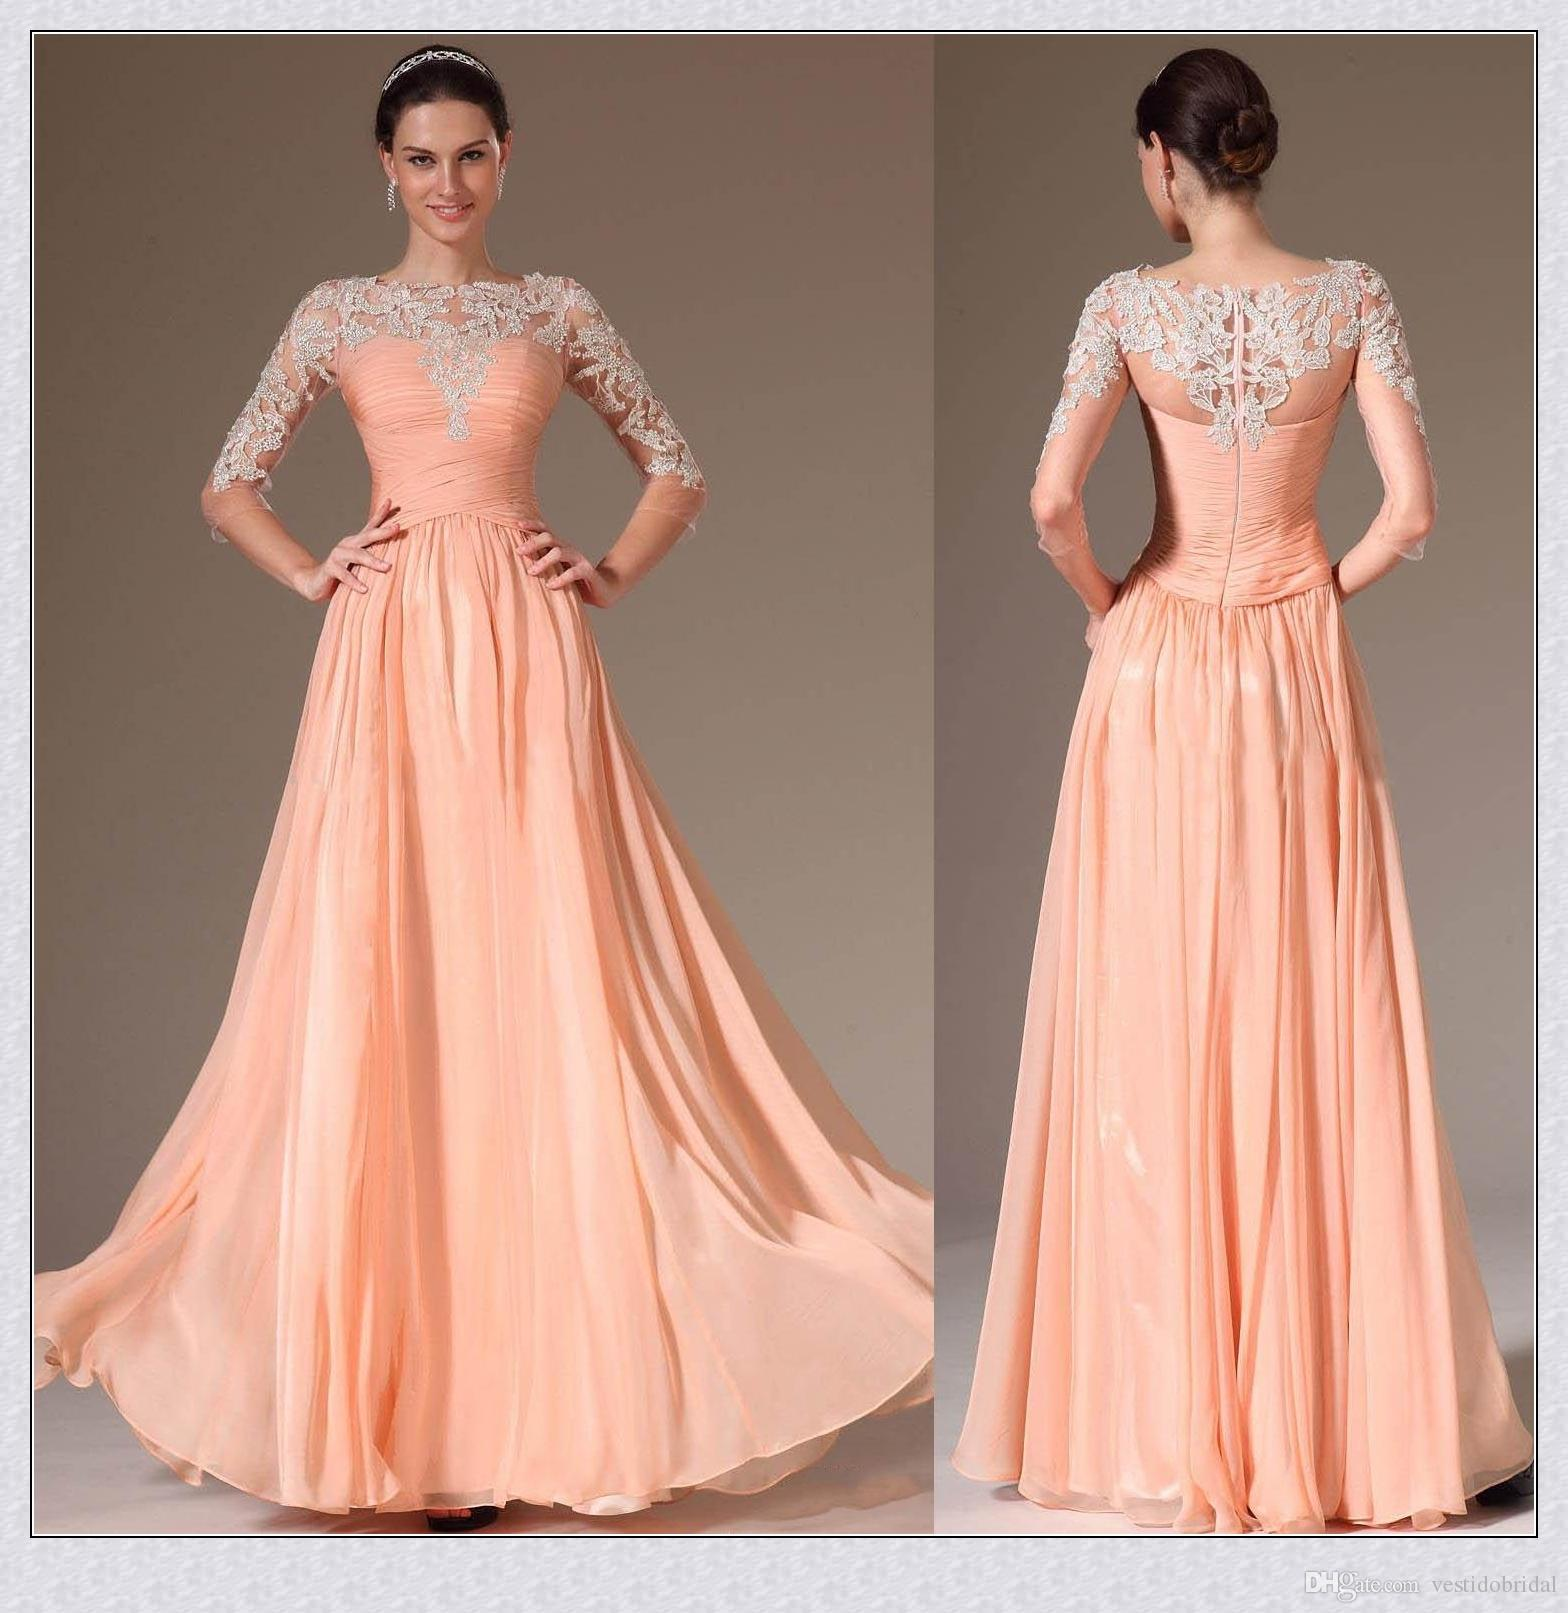 373de260c9d7 Coral Prom Dresses Long2017 Bateau Neck Lace Applique 3/4 Long Illusion  Sleeve A Line Cheap Chiffon Formal Evening Gowns Bridesmaid Dress